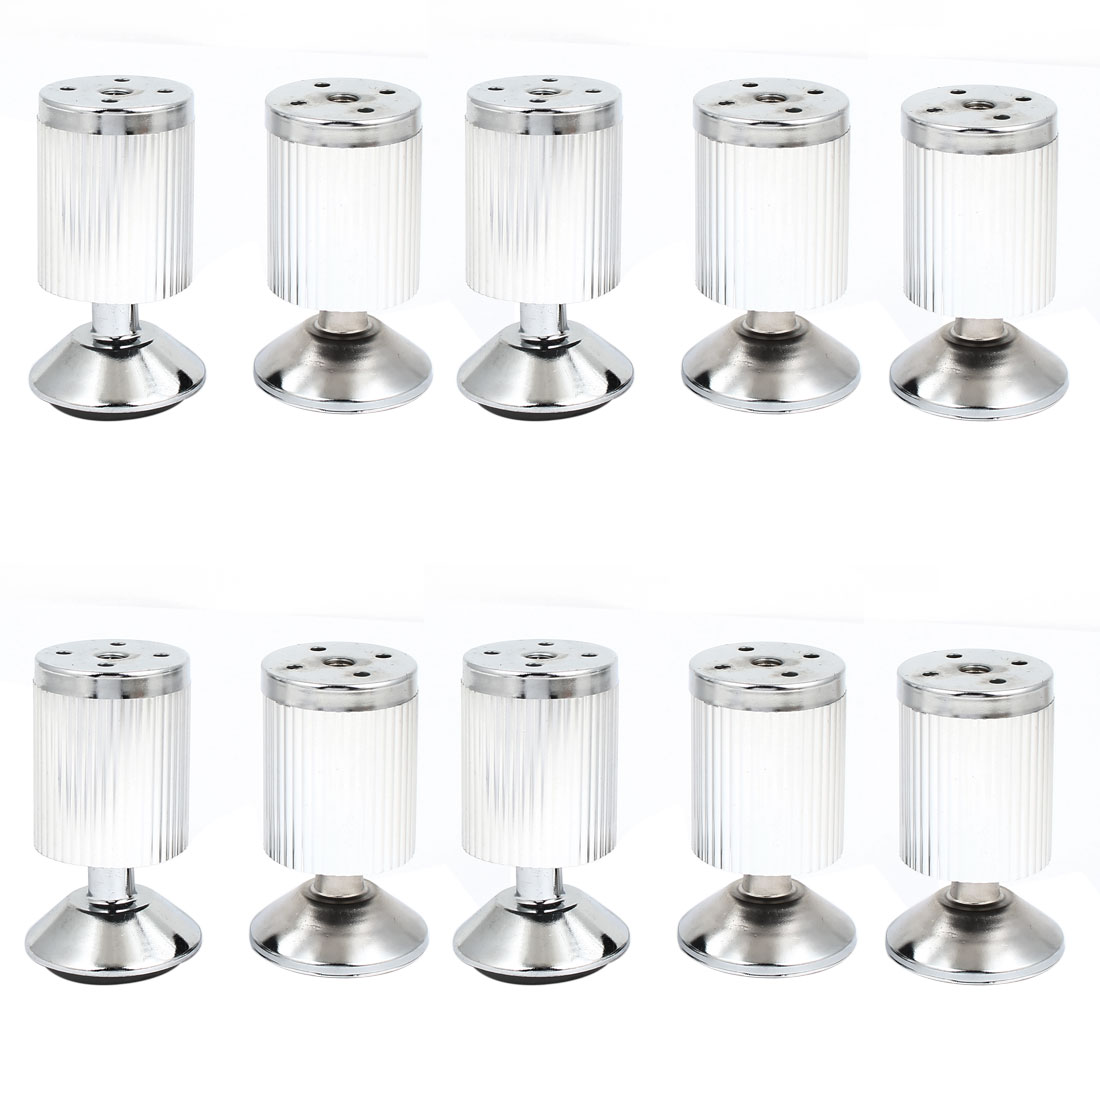 Adjustable Stainless Steel Round Furniture Cabinet Sofa Tea Table Leg Feet 10pcs